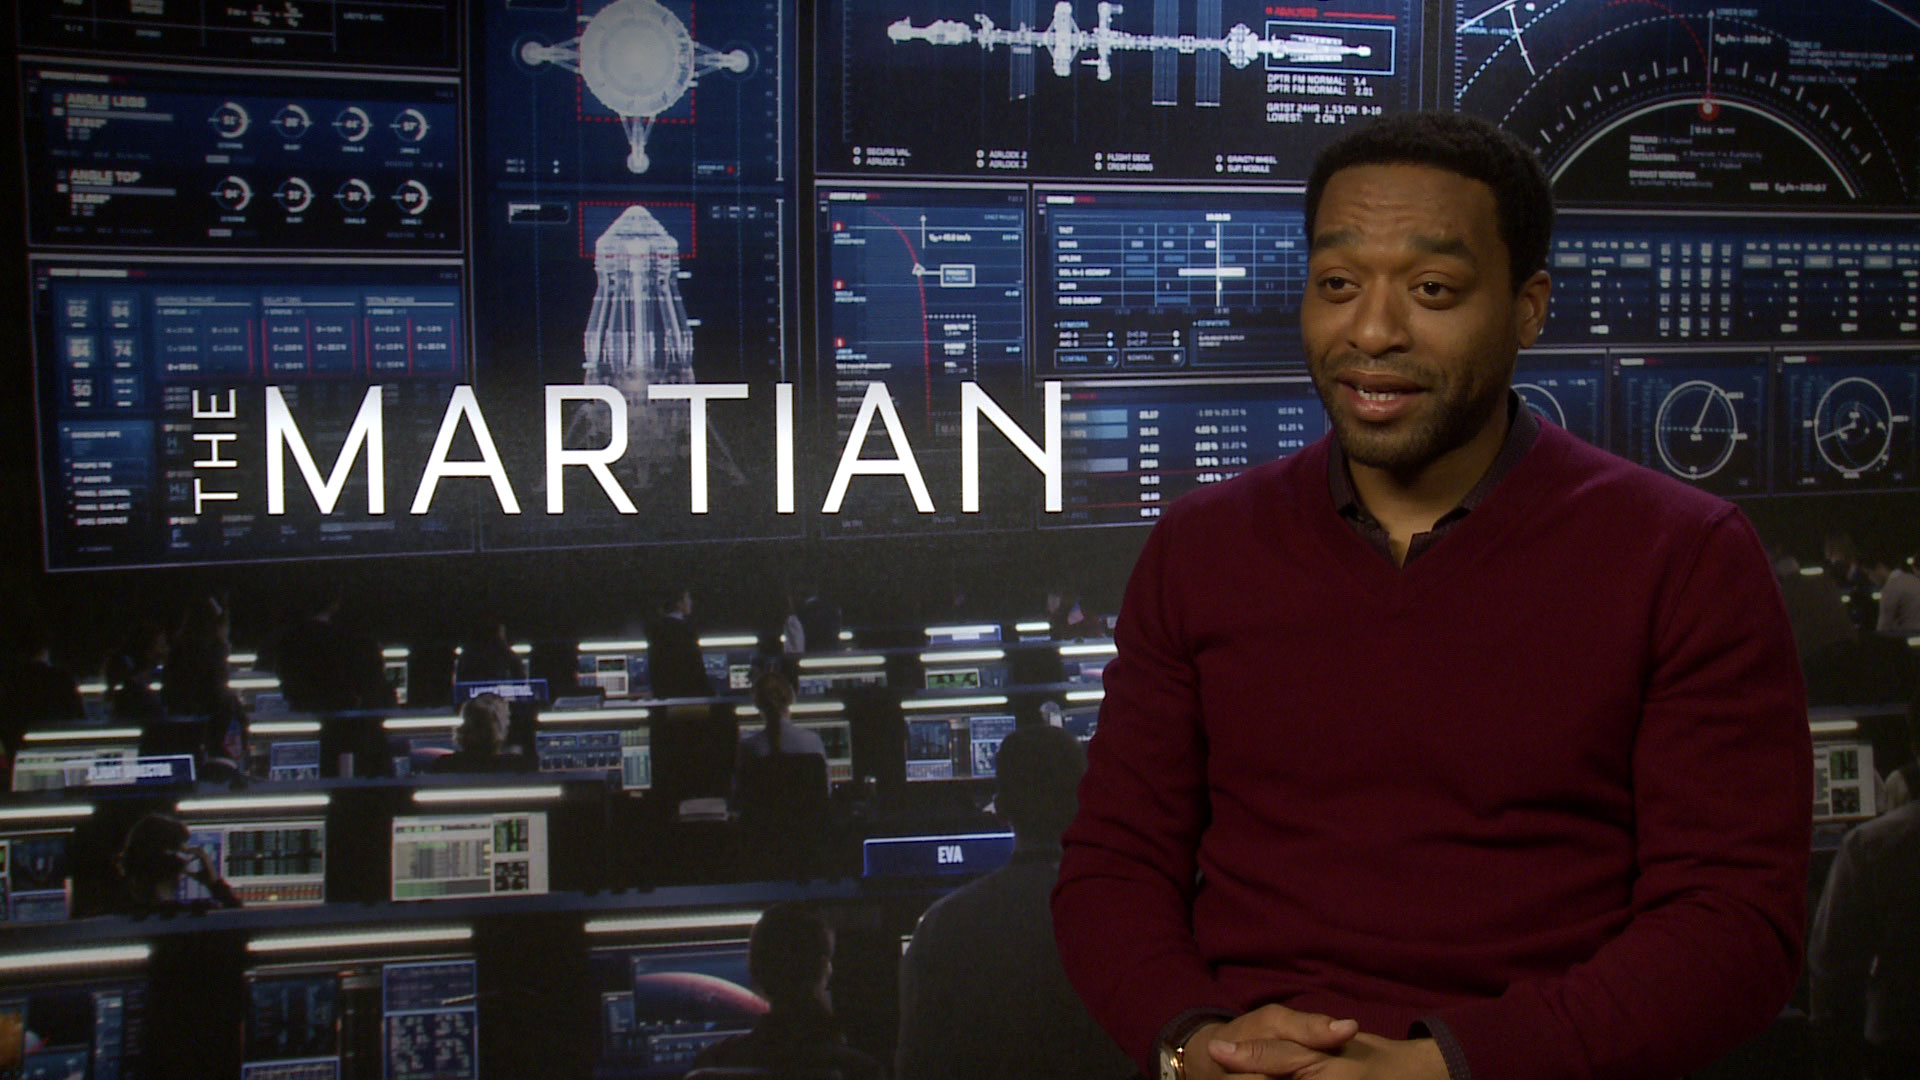 EXCLUSIVE: The Martian's Chiwetel Ejiofor says he has the scientific knowledge of a 16-year-old